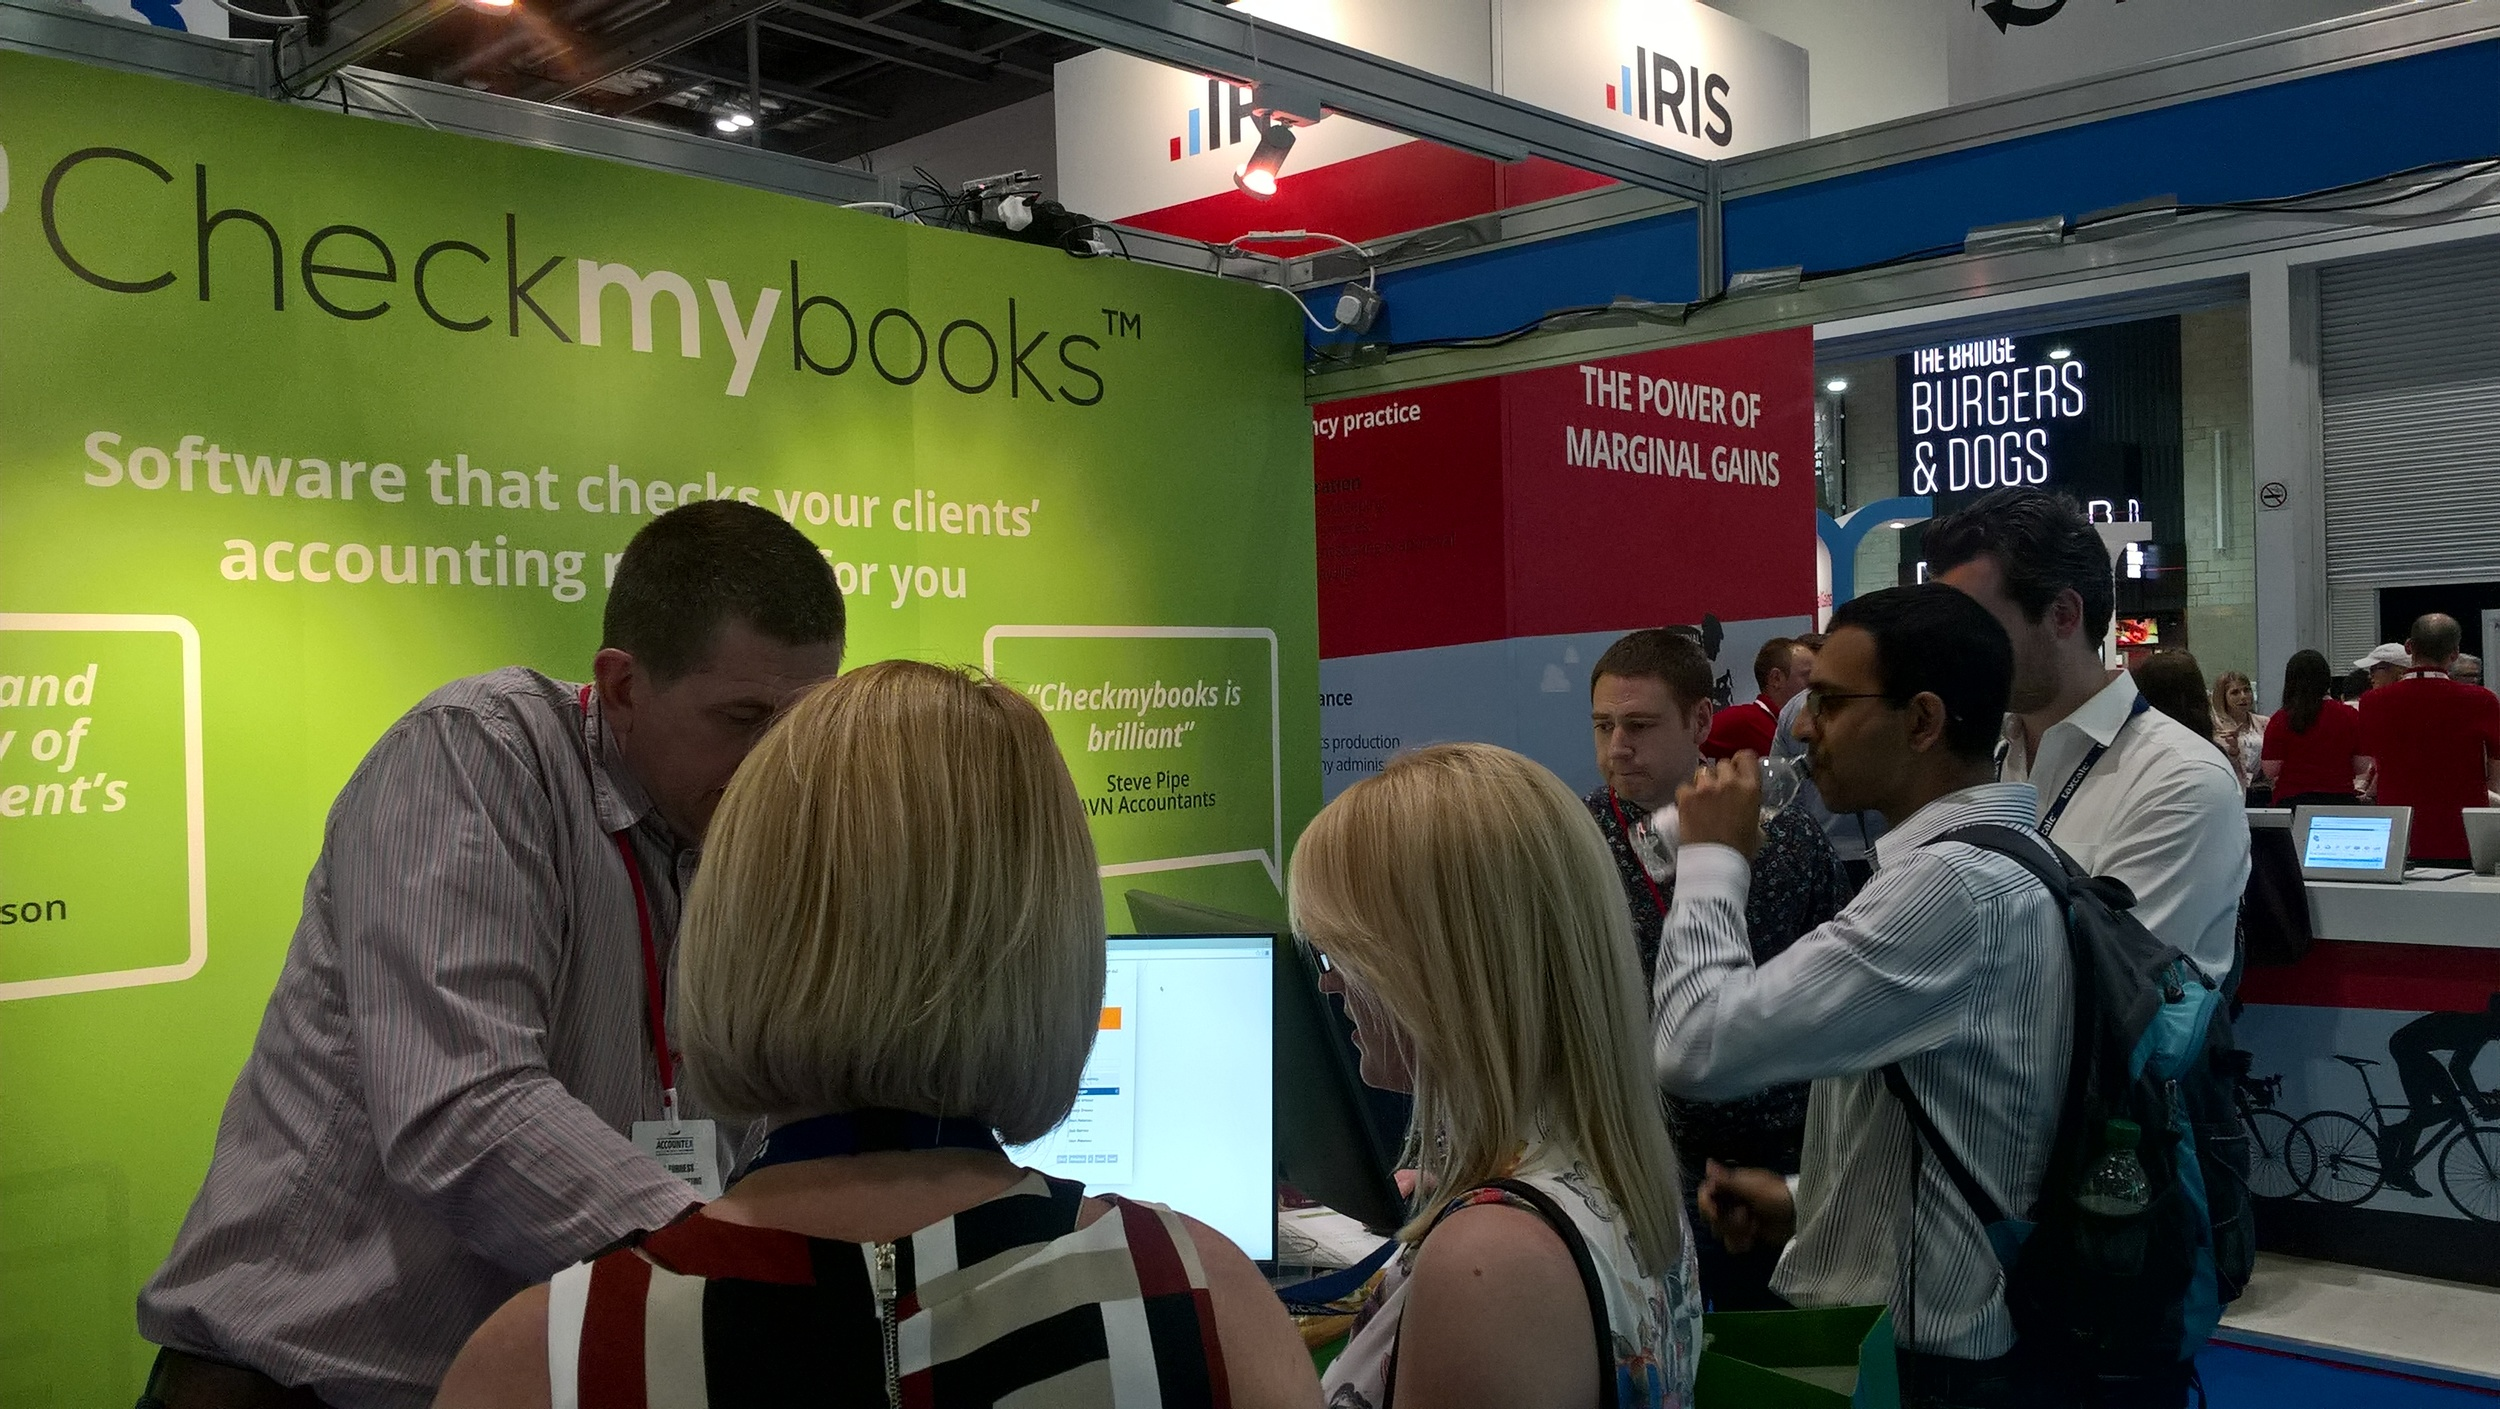 Rob and Nathan showing accountants Checkmybooks in action